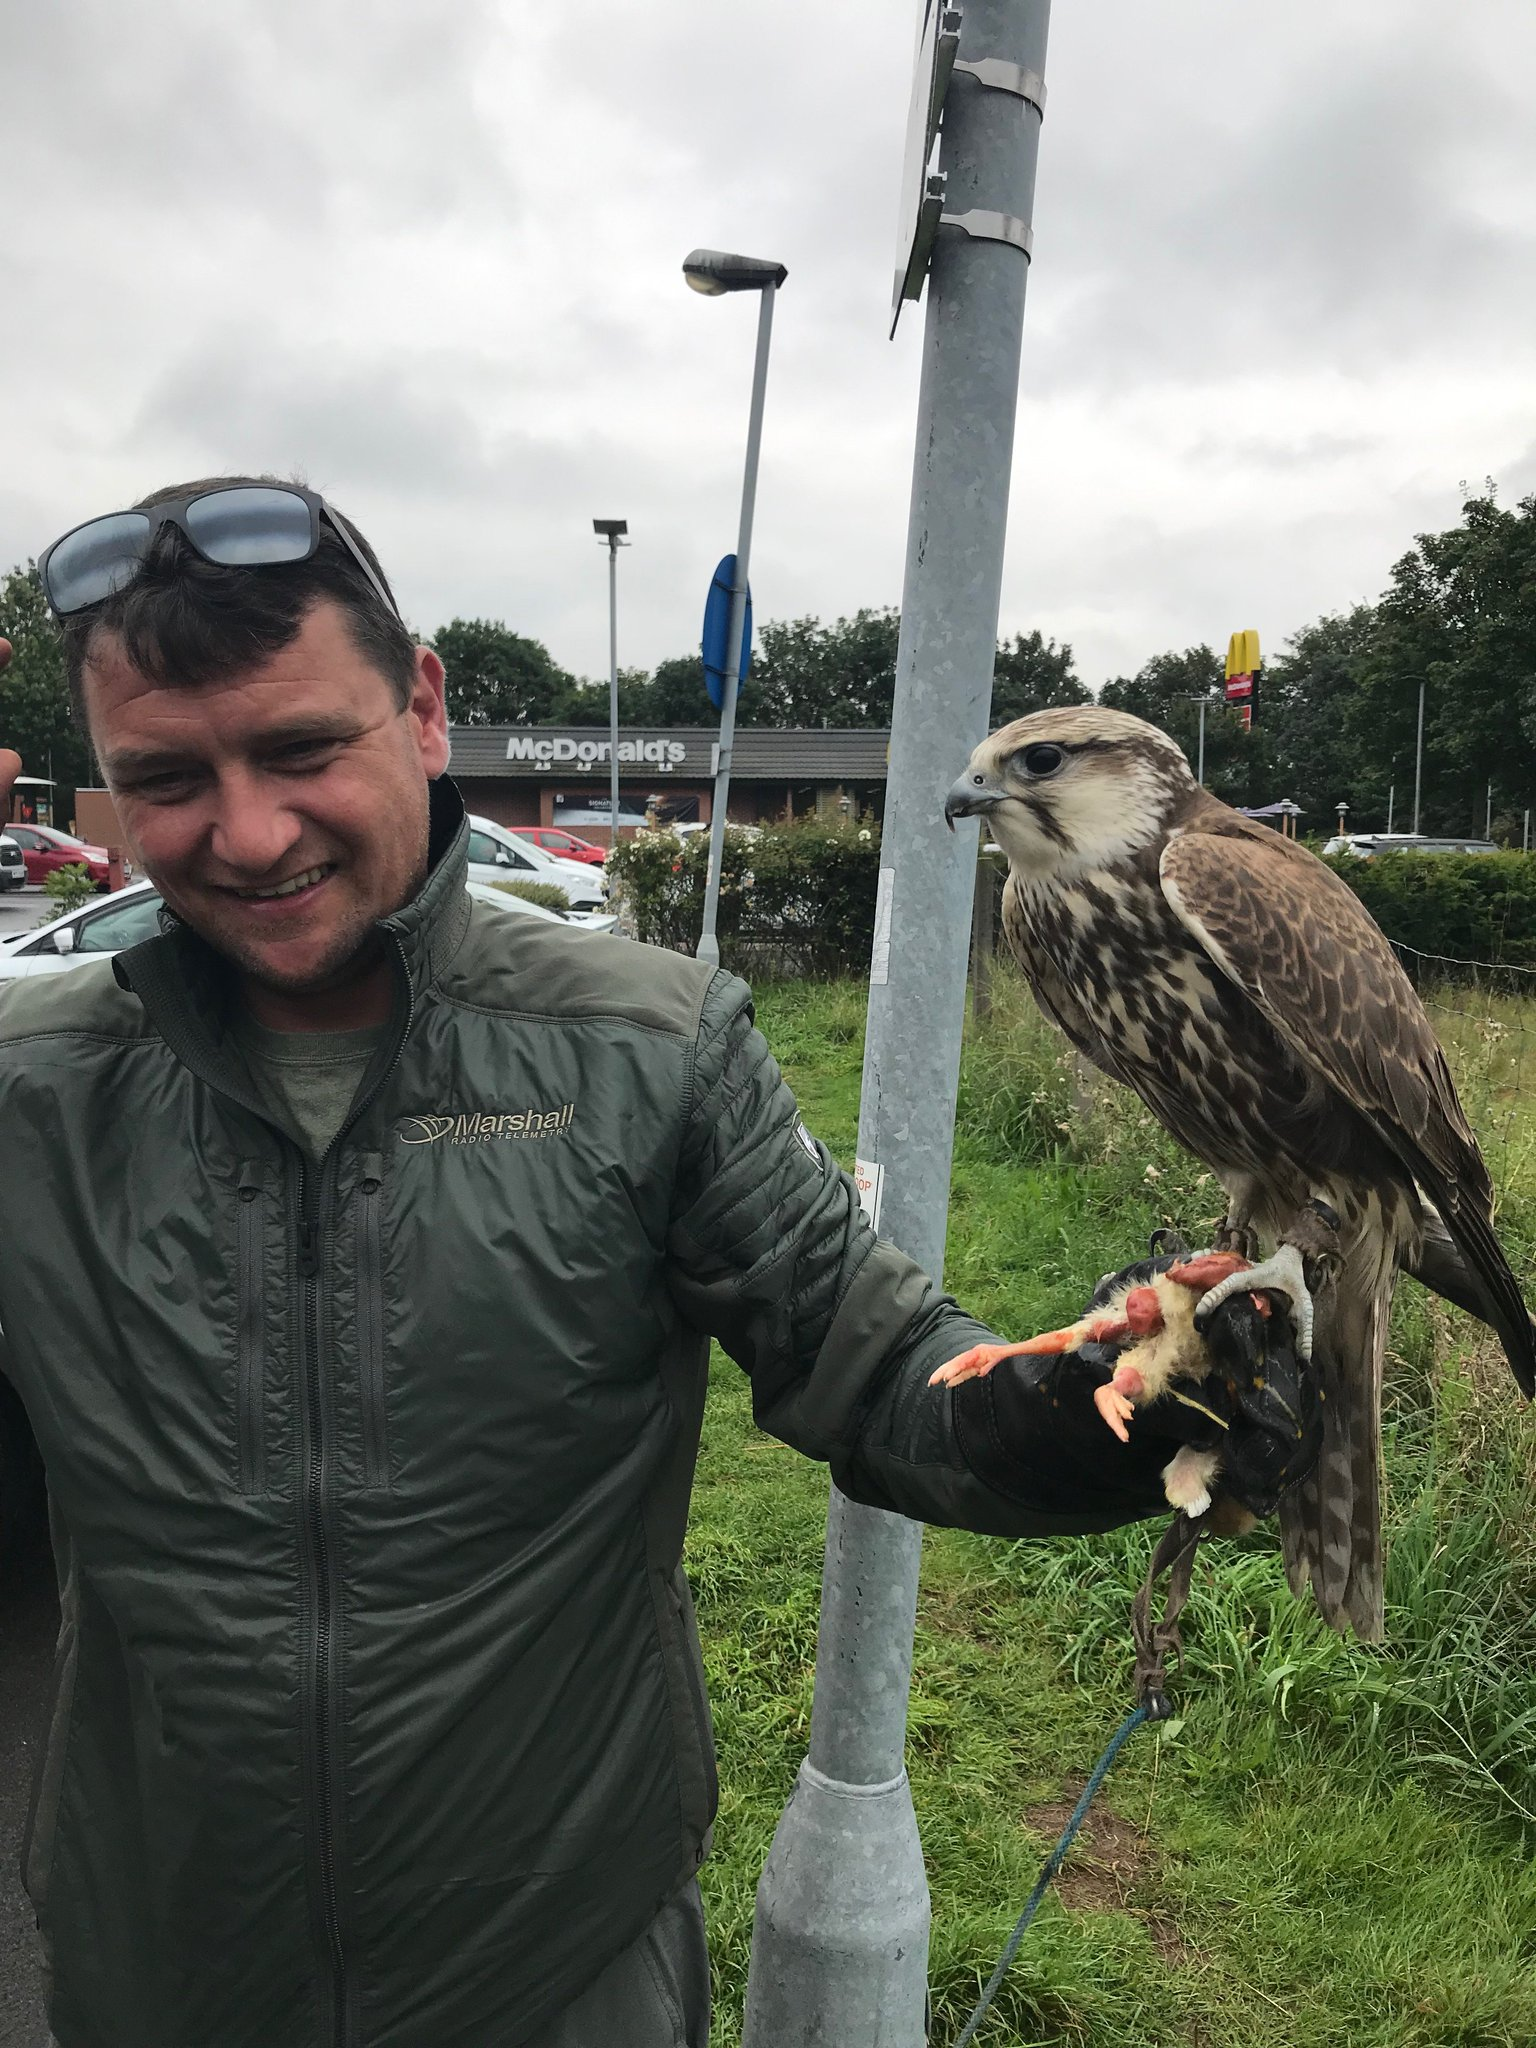 This Seika Falcon went missing from Cheshire on the 6th August and went on quite the adventure, turning up in Tyne & Wear on the 14th! Luckily ACO Dawson was able to trace his owner who drove straight up north to be reunited with his bird! Please microchip your animals! 51 🐦 https://t.co/nRKF6S2sSa